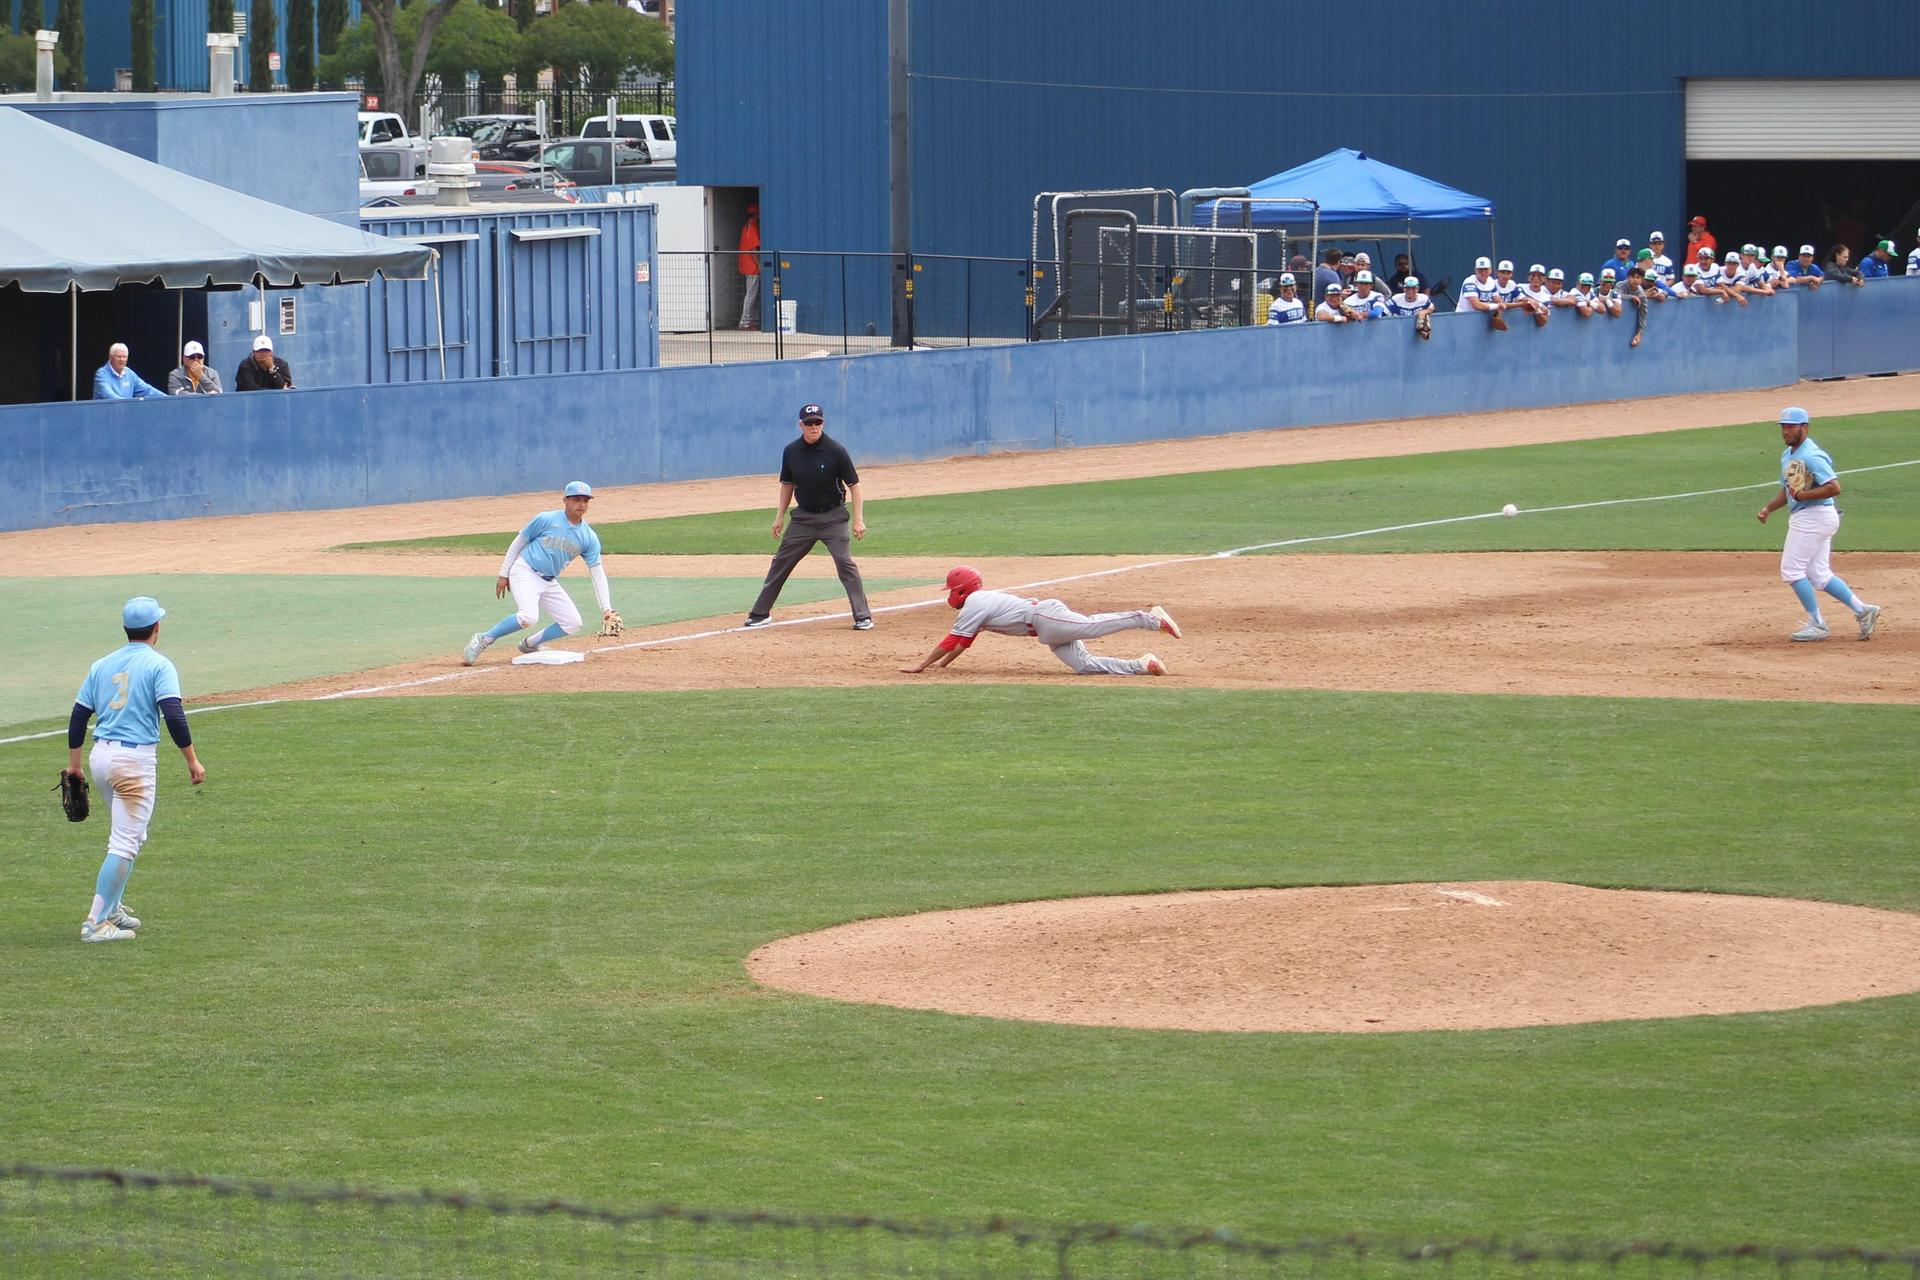 Ramos runs to third